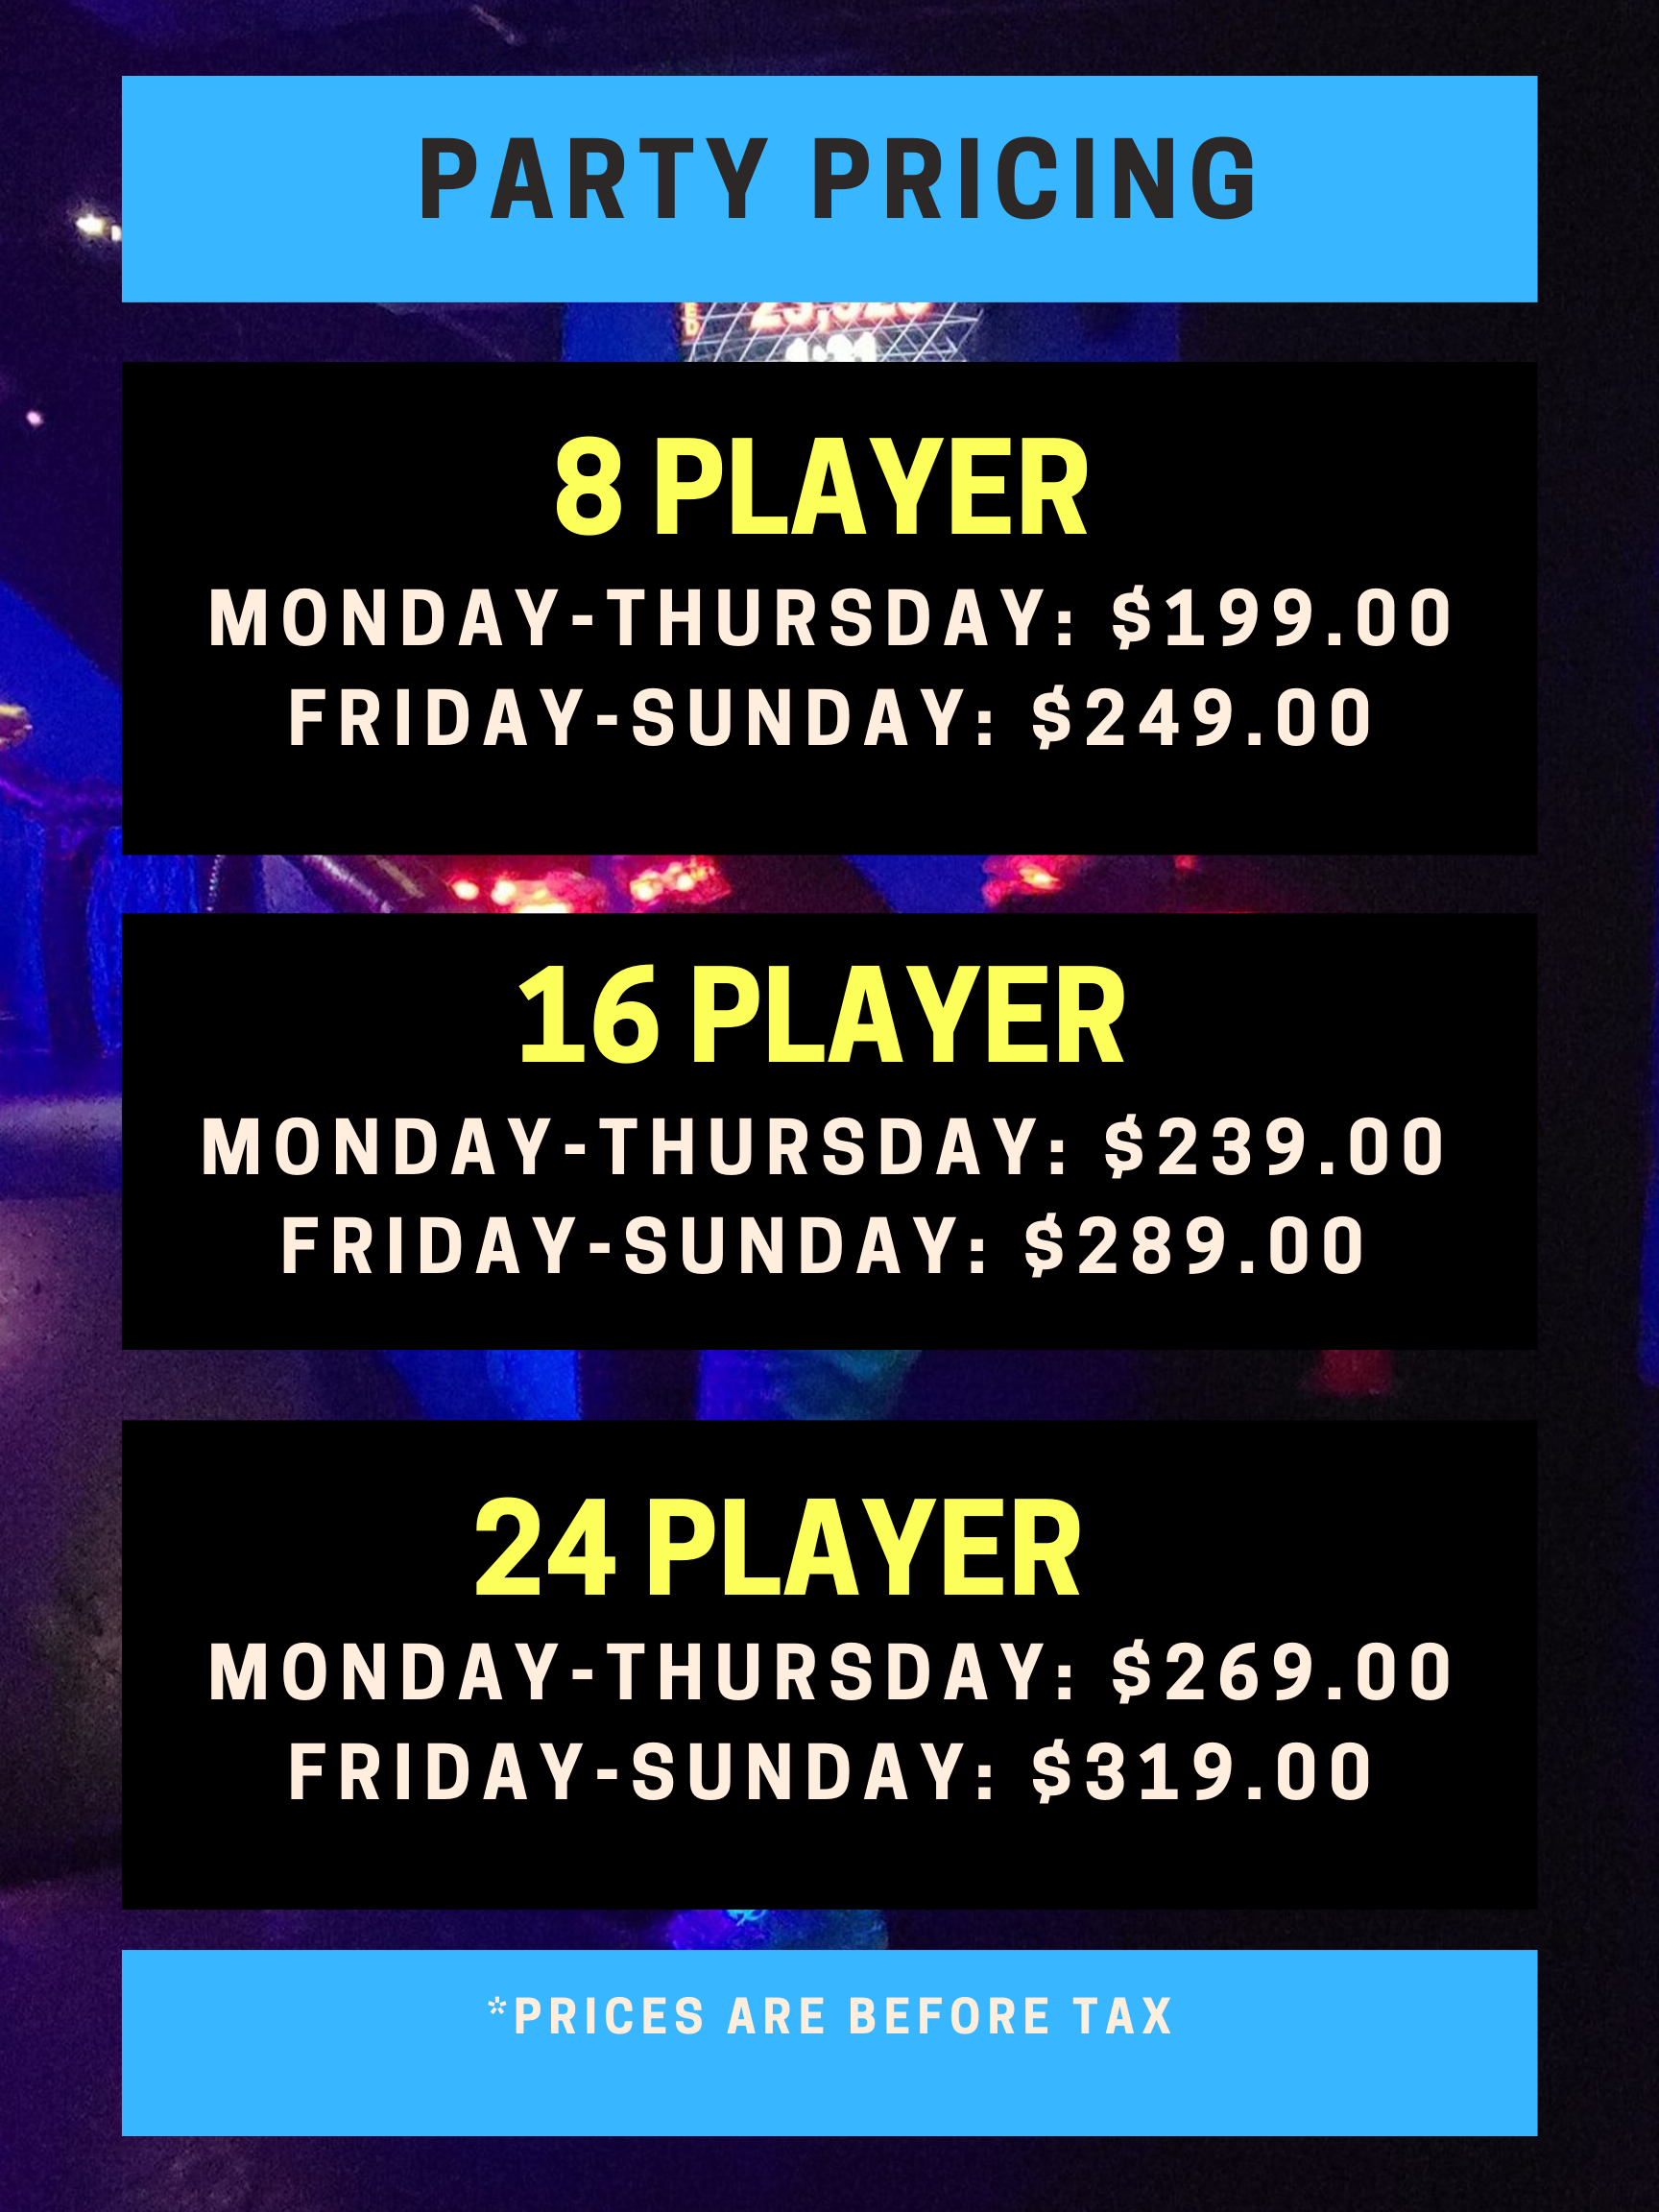 PARTY PRICING-2